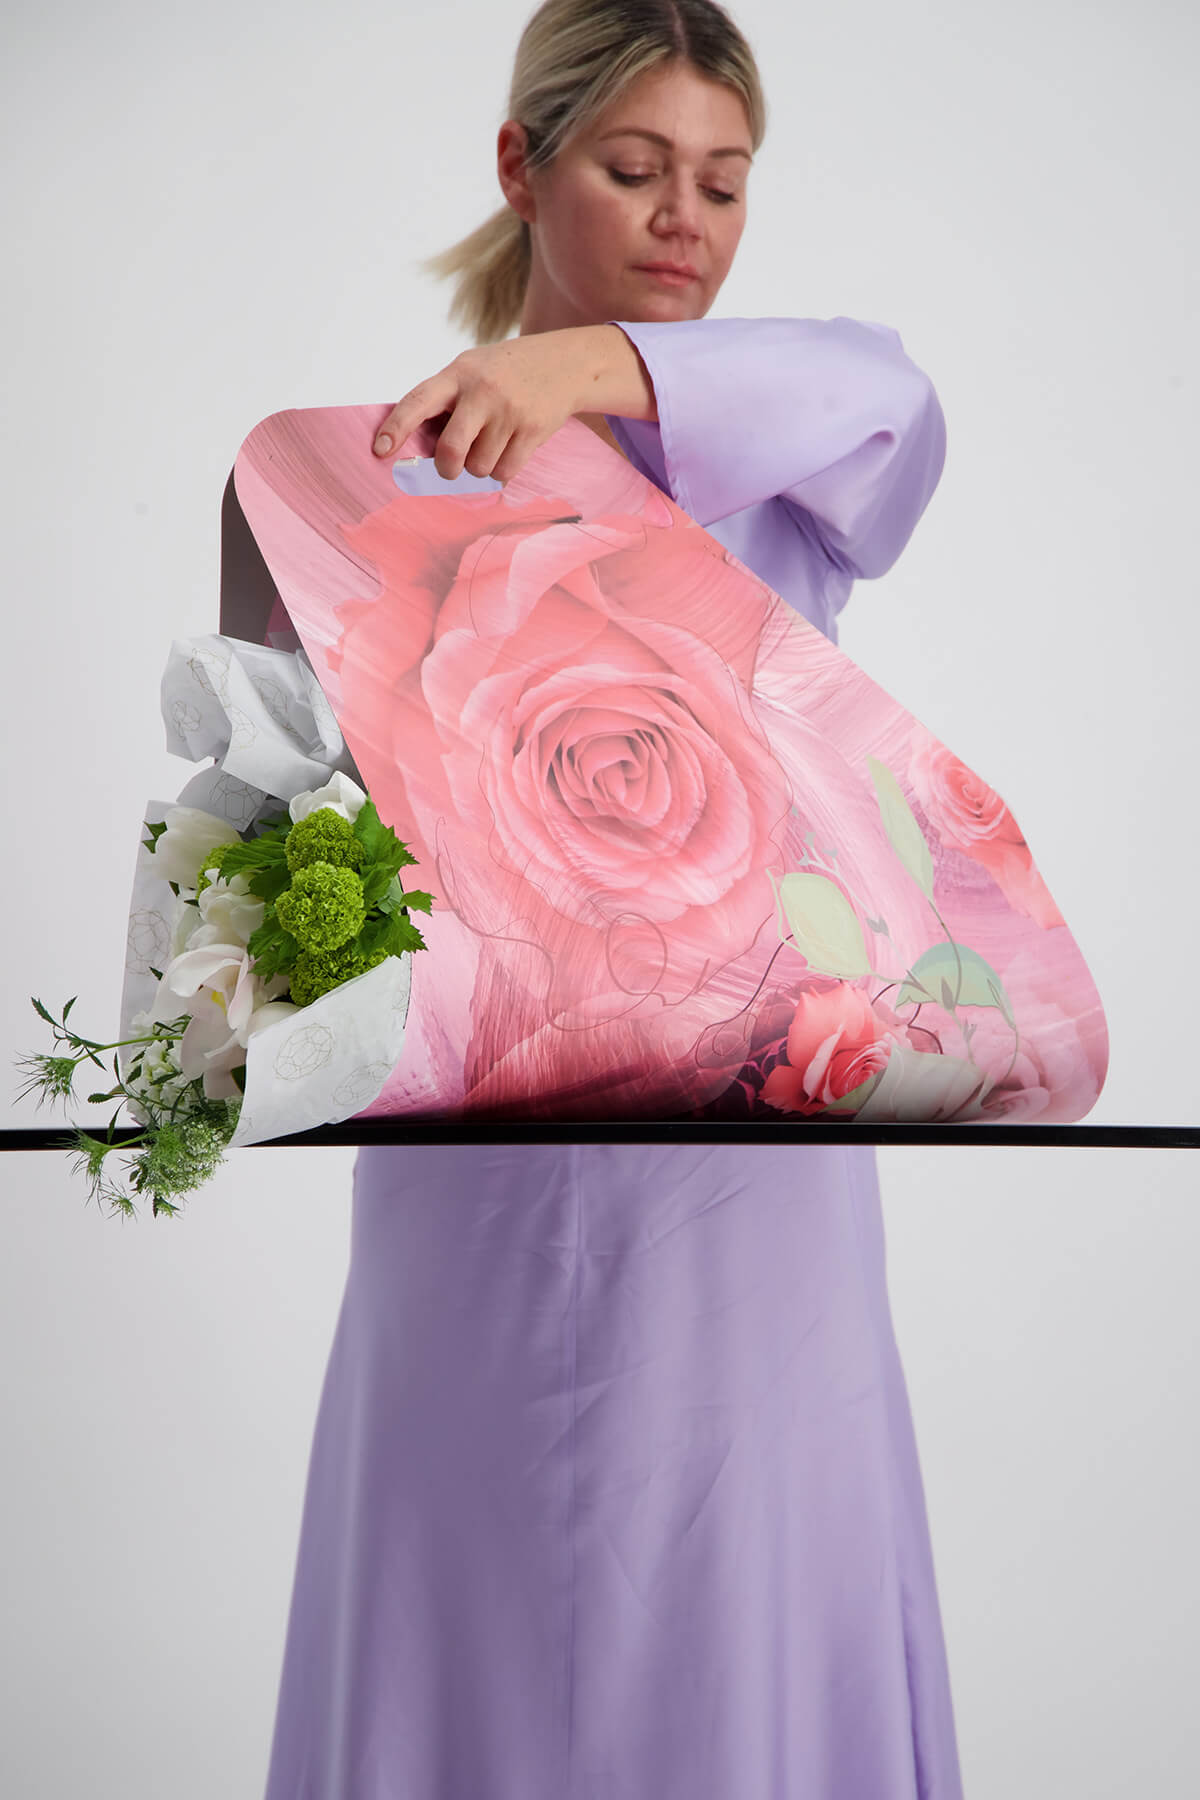 Florist holding bunch of white and green flowers wrapped in pink packaging during a photoshoot